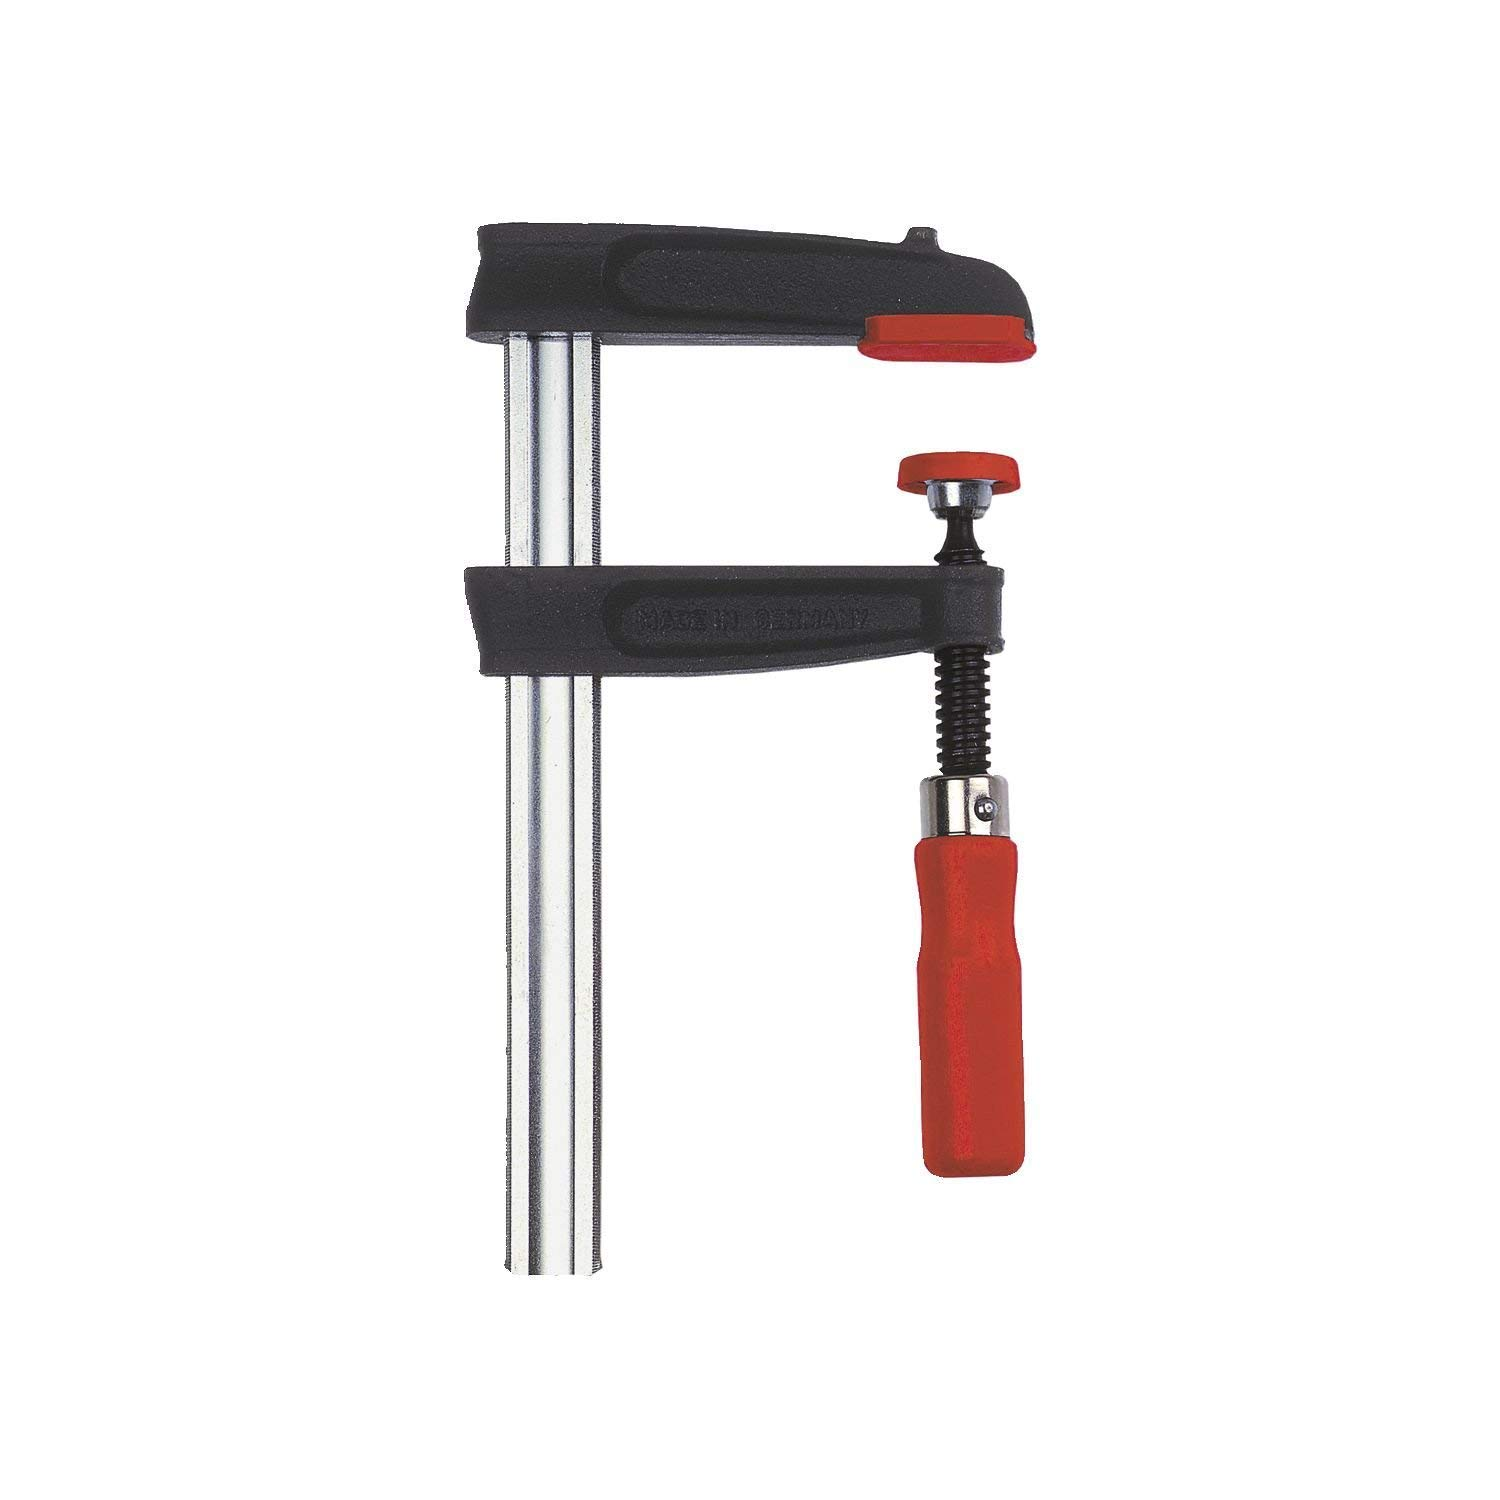 Bessey TPN16BE Screw Clamp Tpn-Be 6.3In/3.15In of Cast-IRON, Black/Red/Silver by Bessey (Image #8)